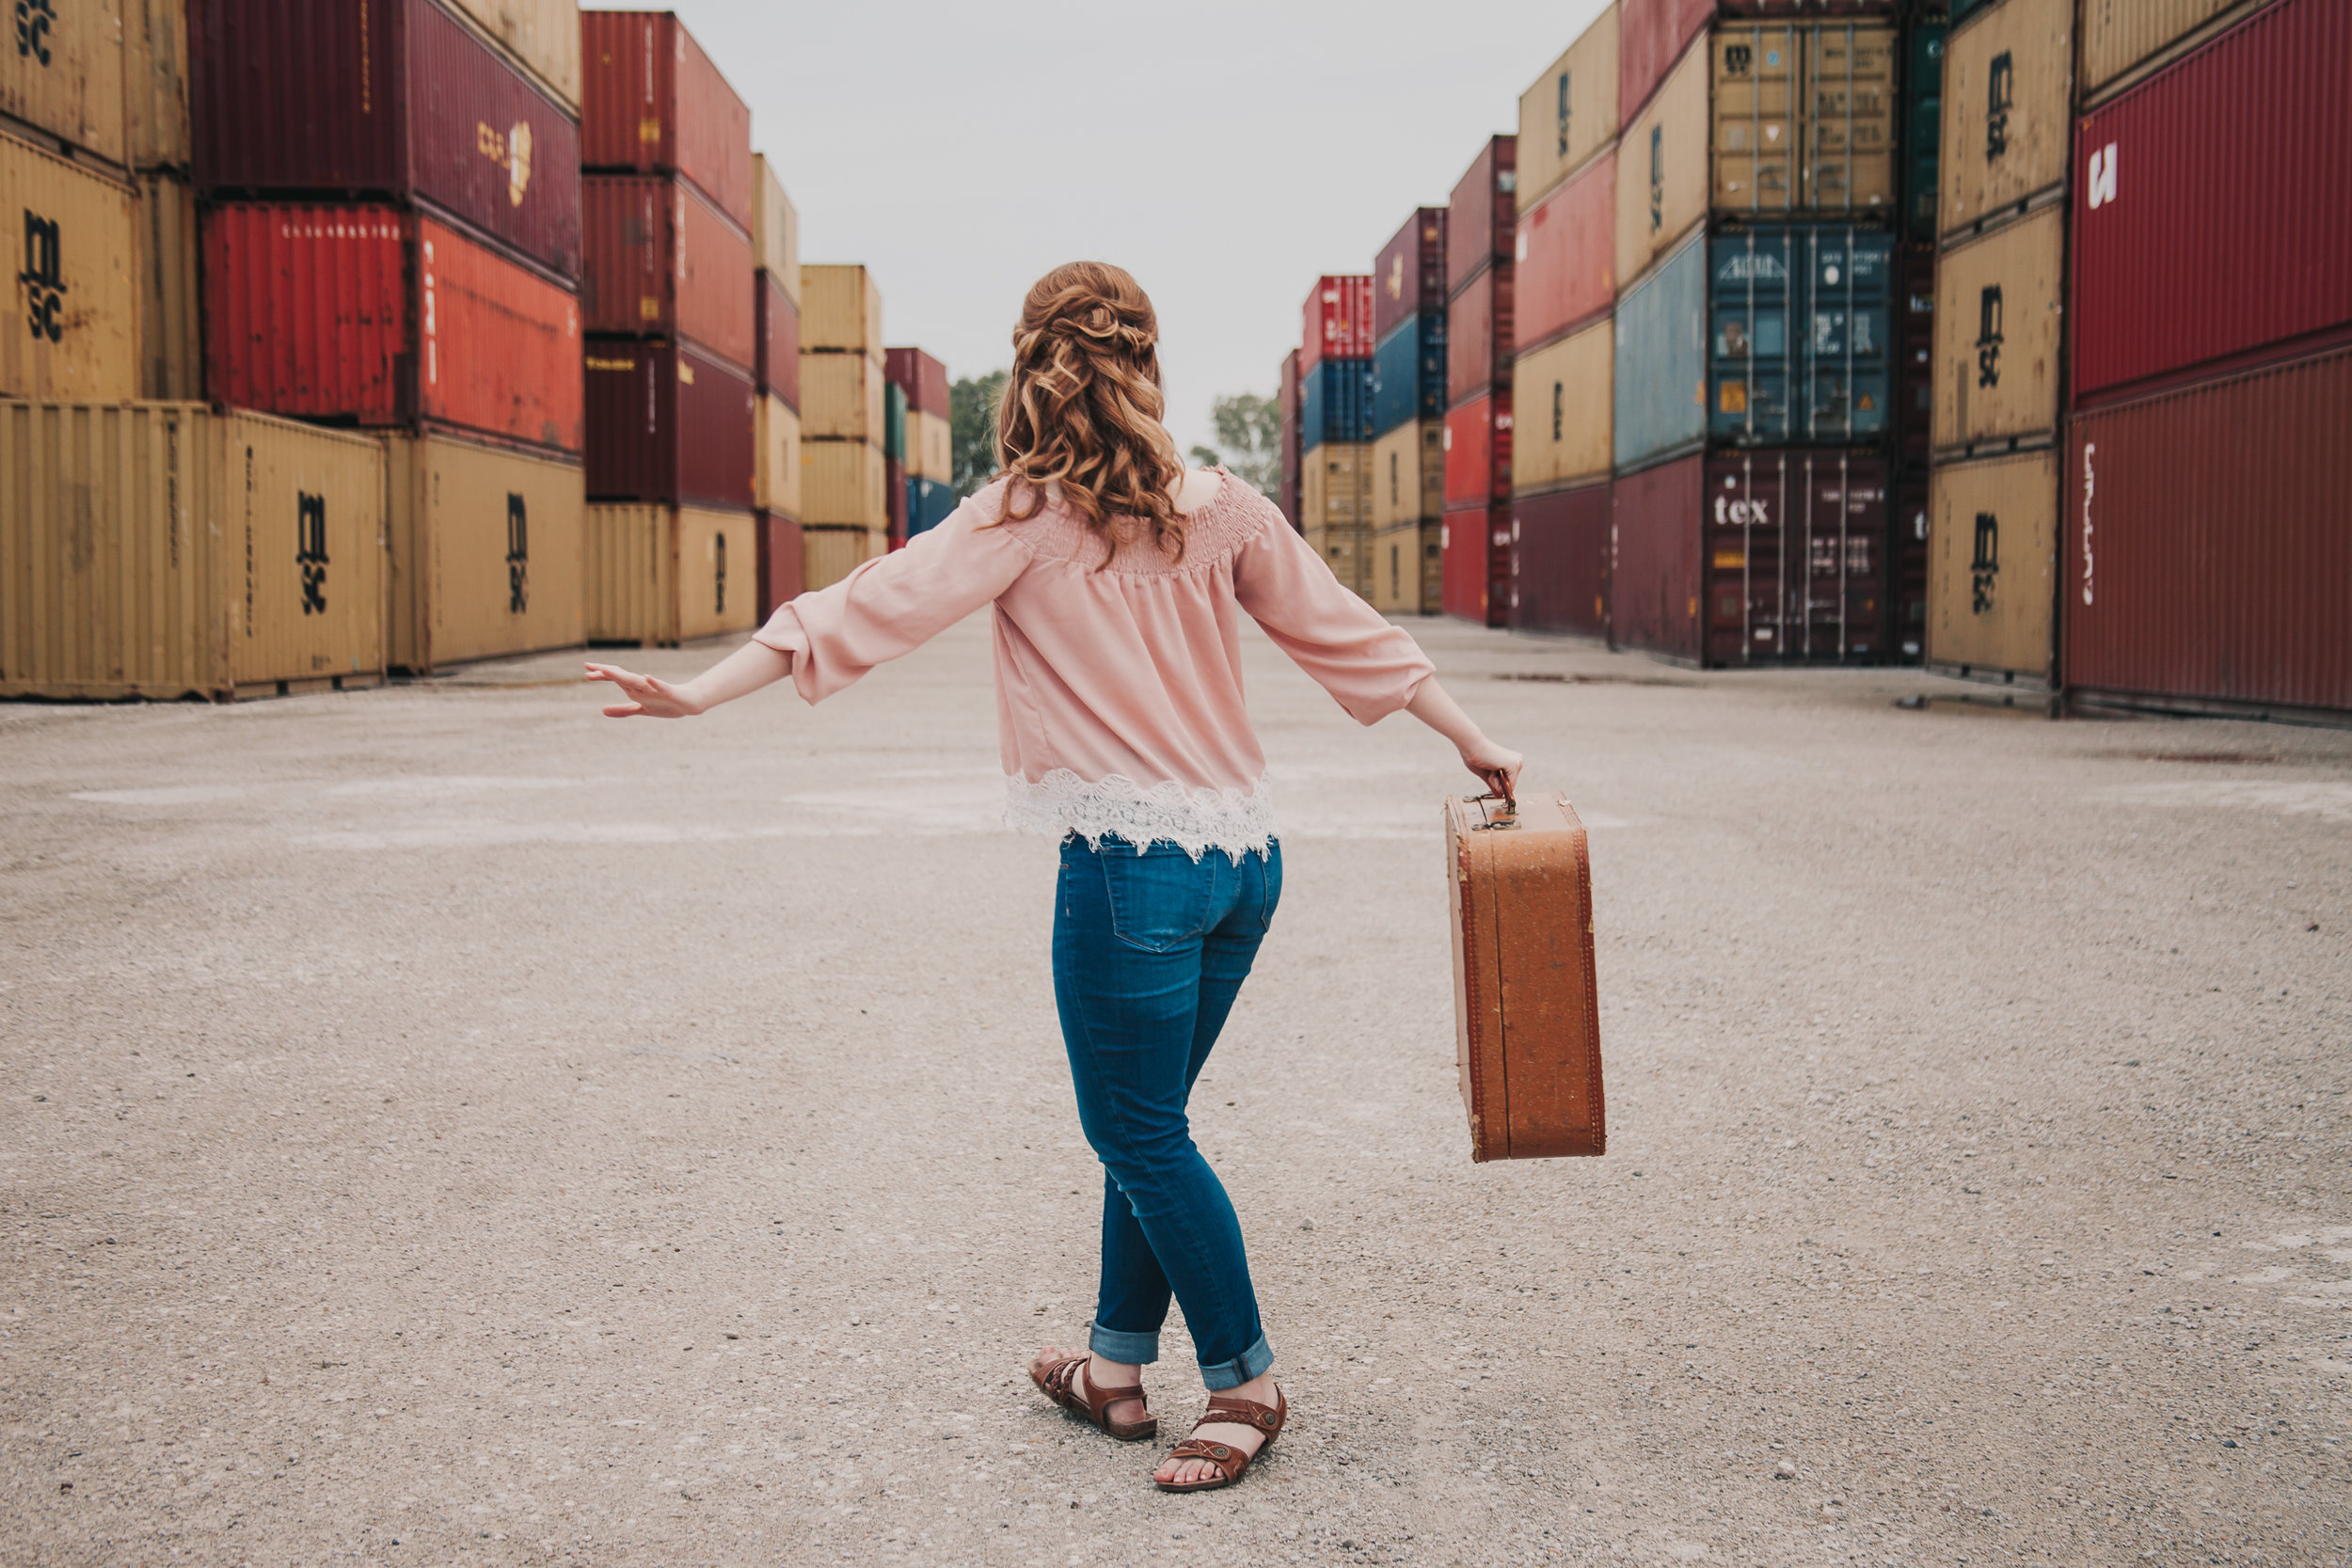 Kansas City Senior Photography with Shipping Containers and Suitcase by Merry Ohler